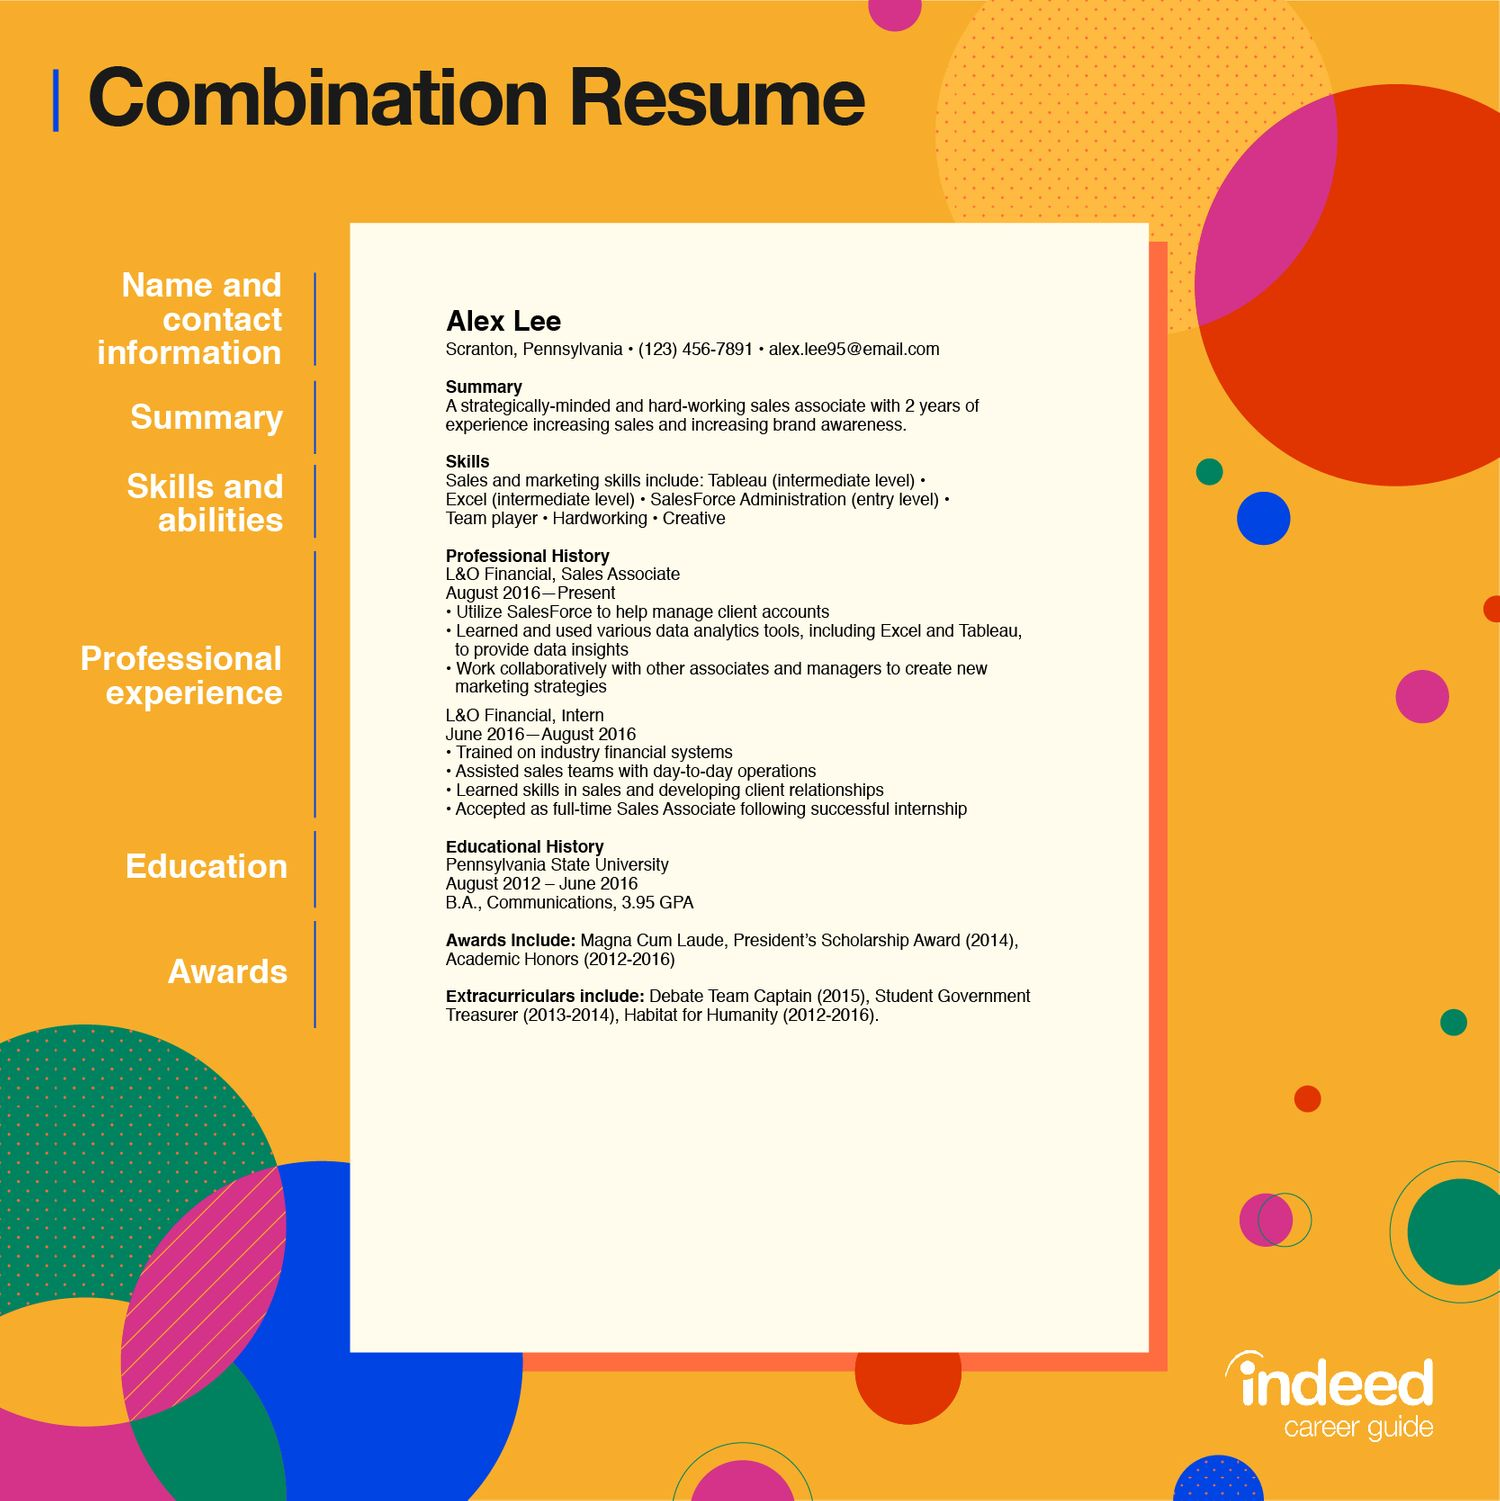 combination resume tips and examples indeed functional resized bilingual skills sample Resume Combination Functional Resume